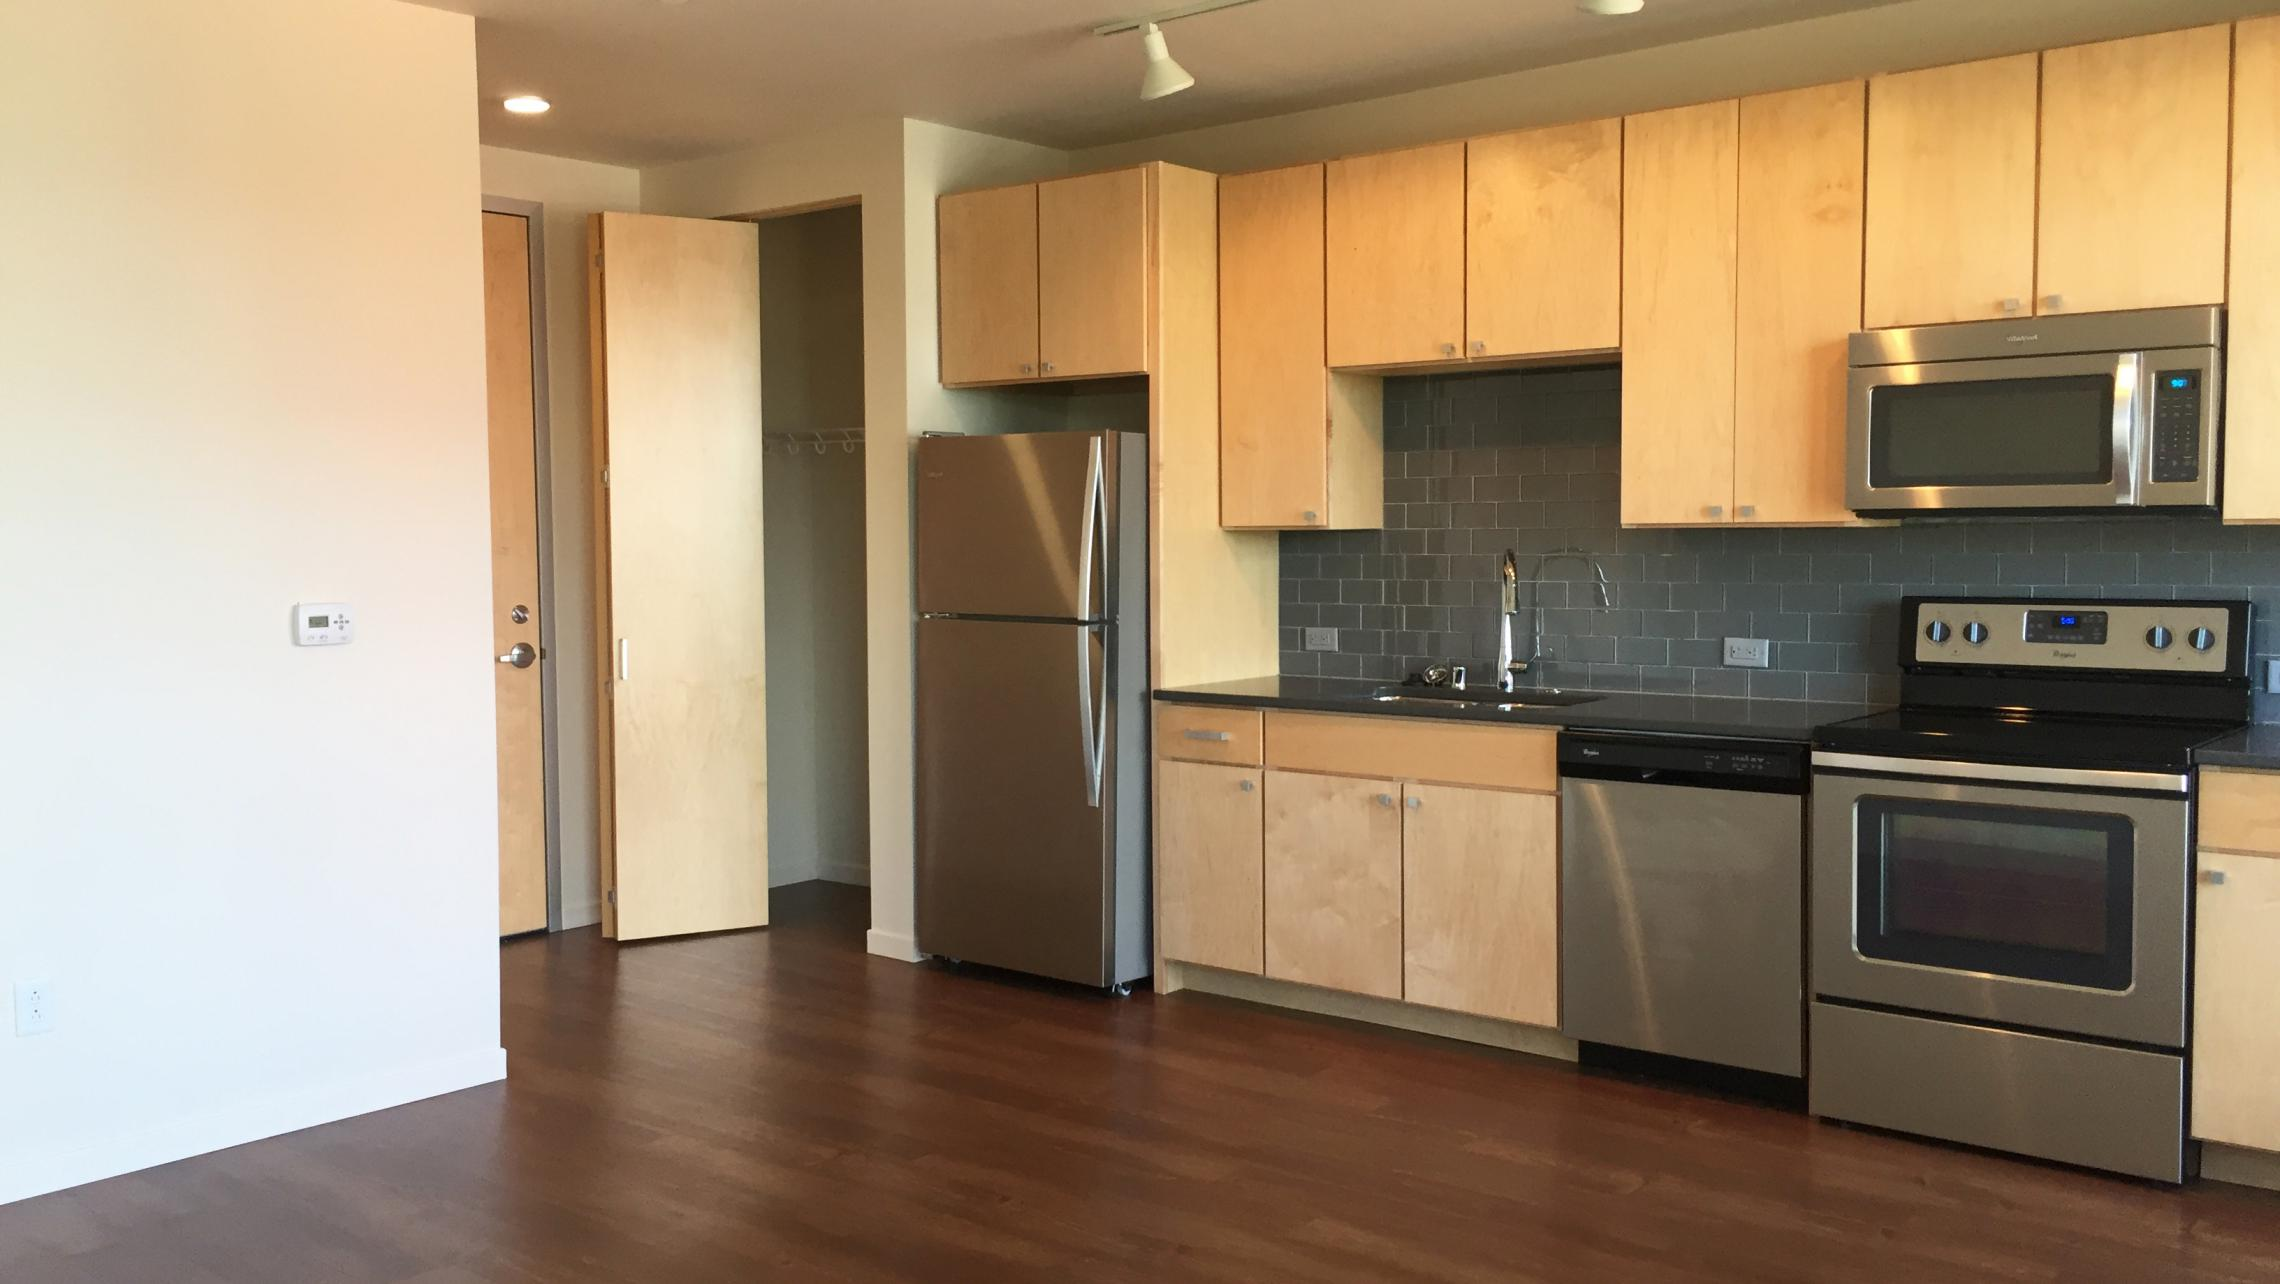 ULI Nine Line Apartment 412 - Kitchen with Stainless Steel Appliances